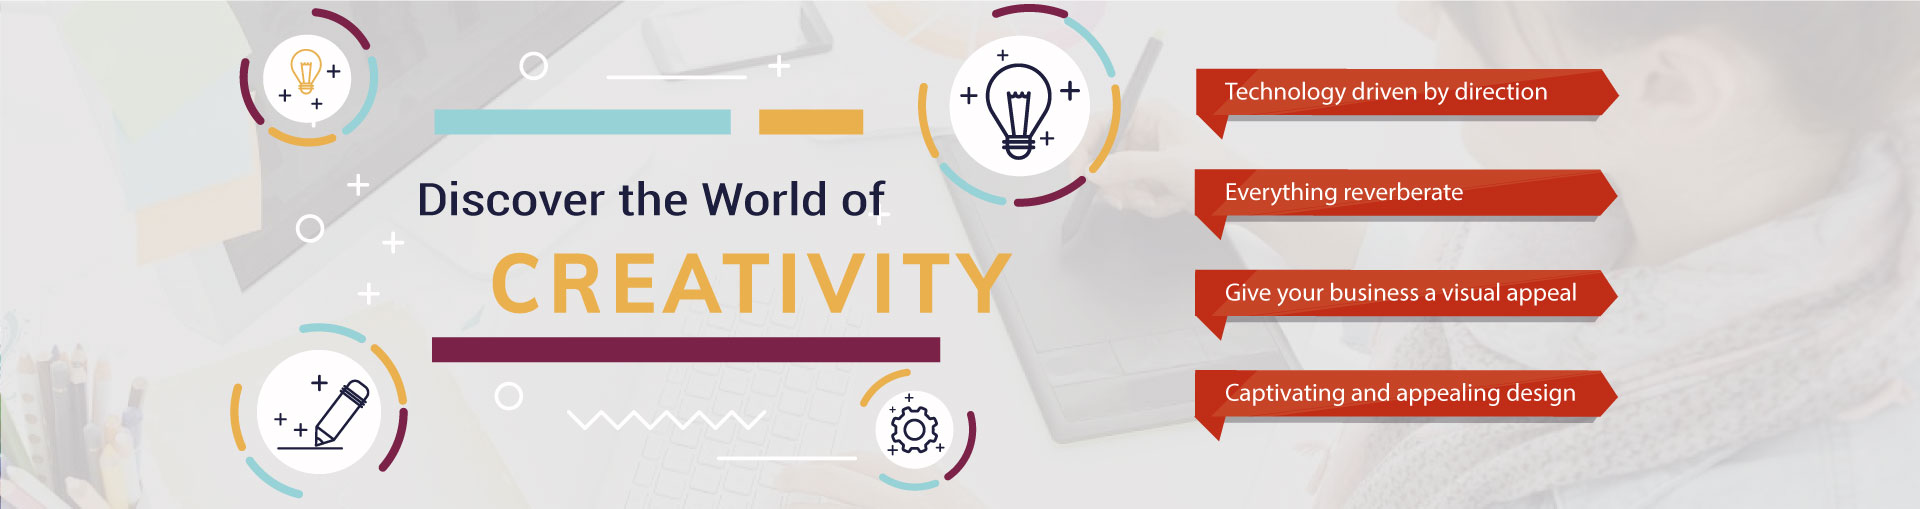 Discover the world of creativity